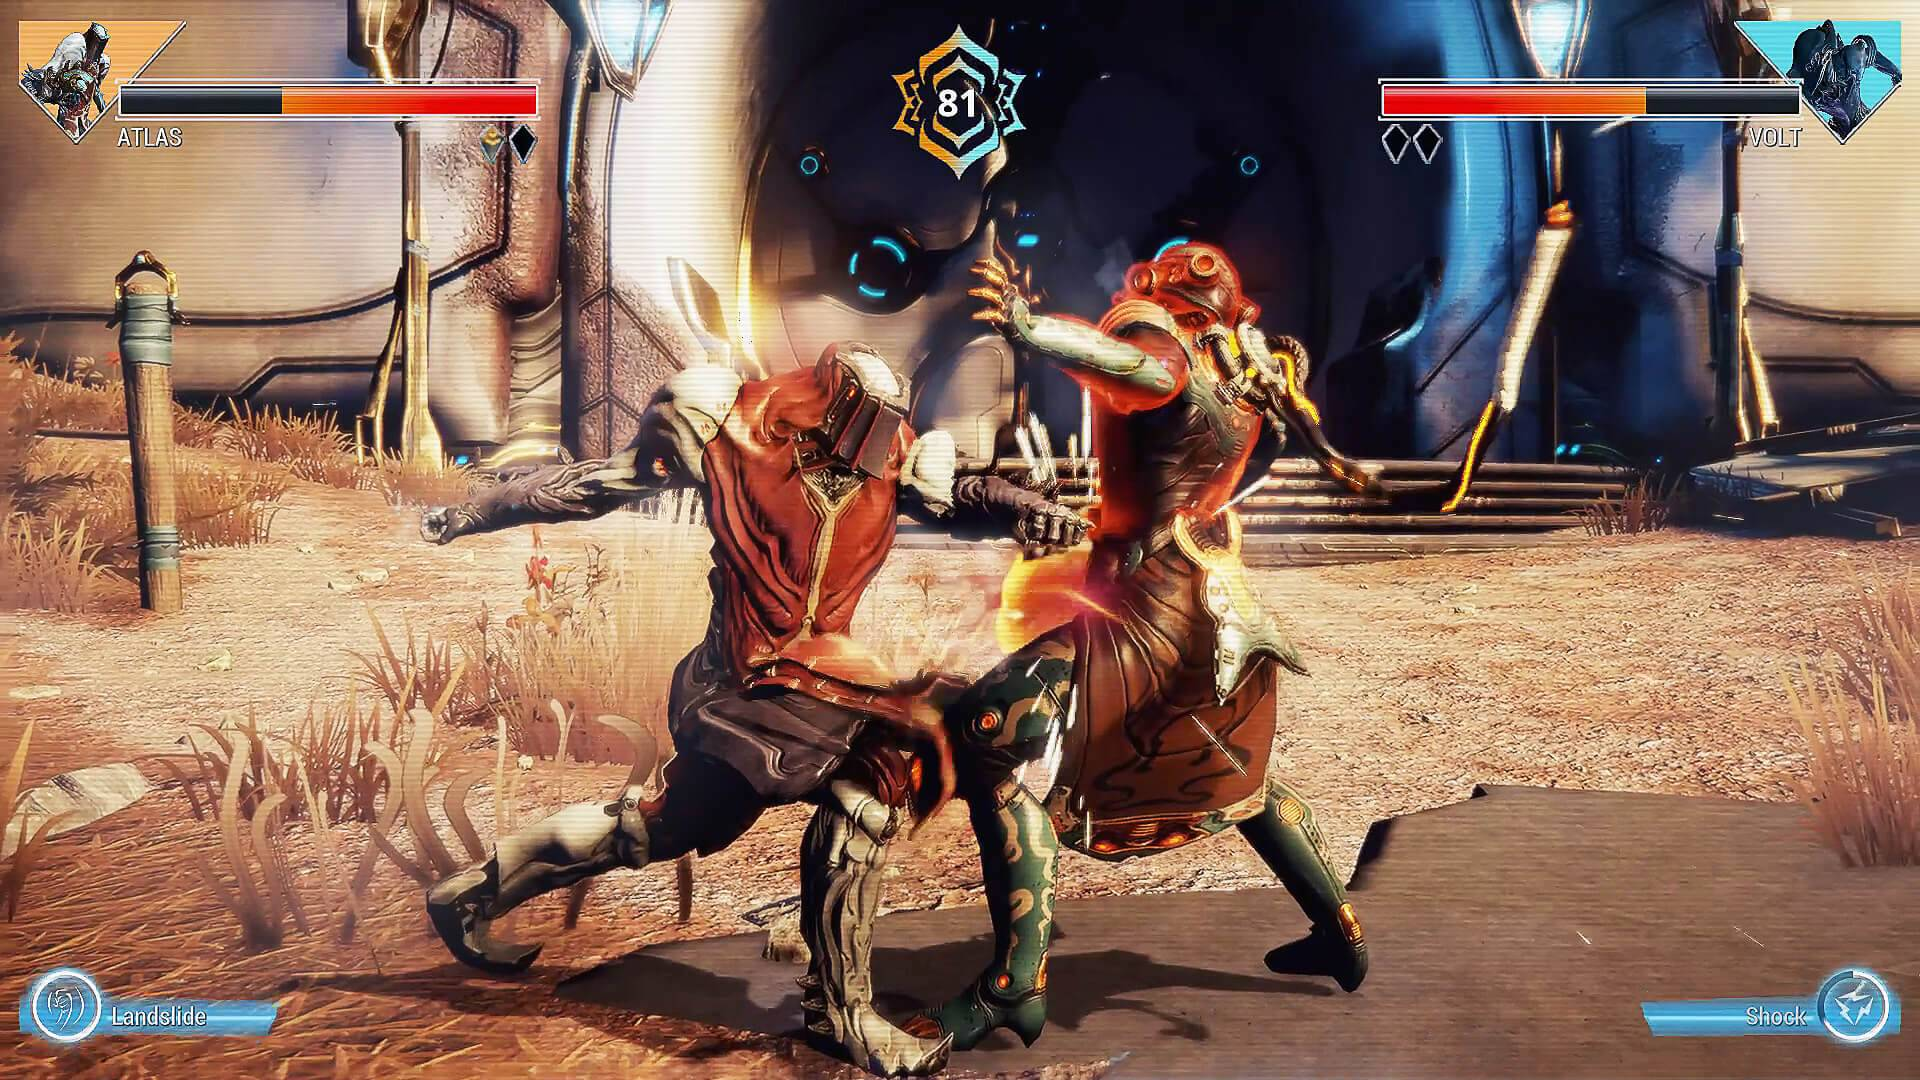 Warframe Adds Free Street Fighter-Style Fighting Game Mode - IGN